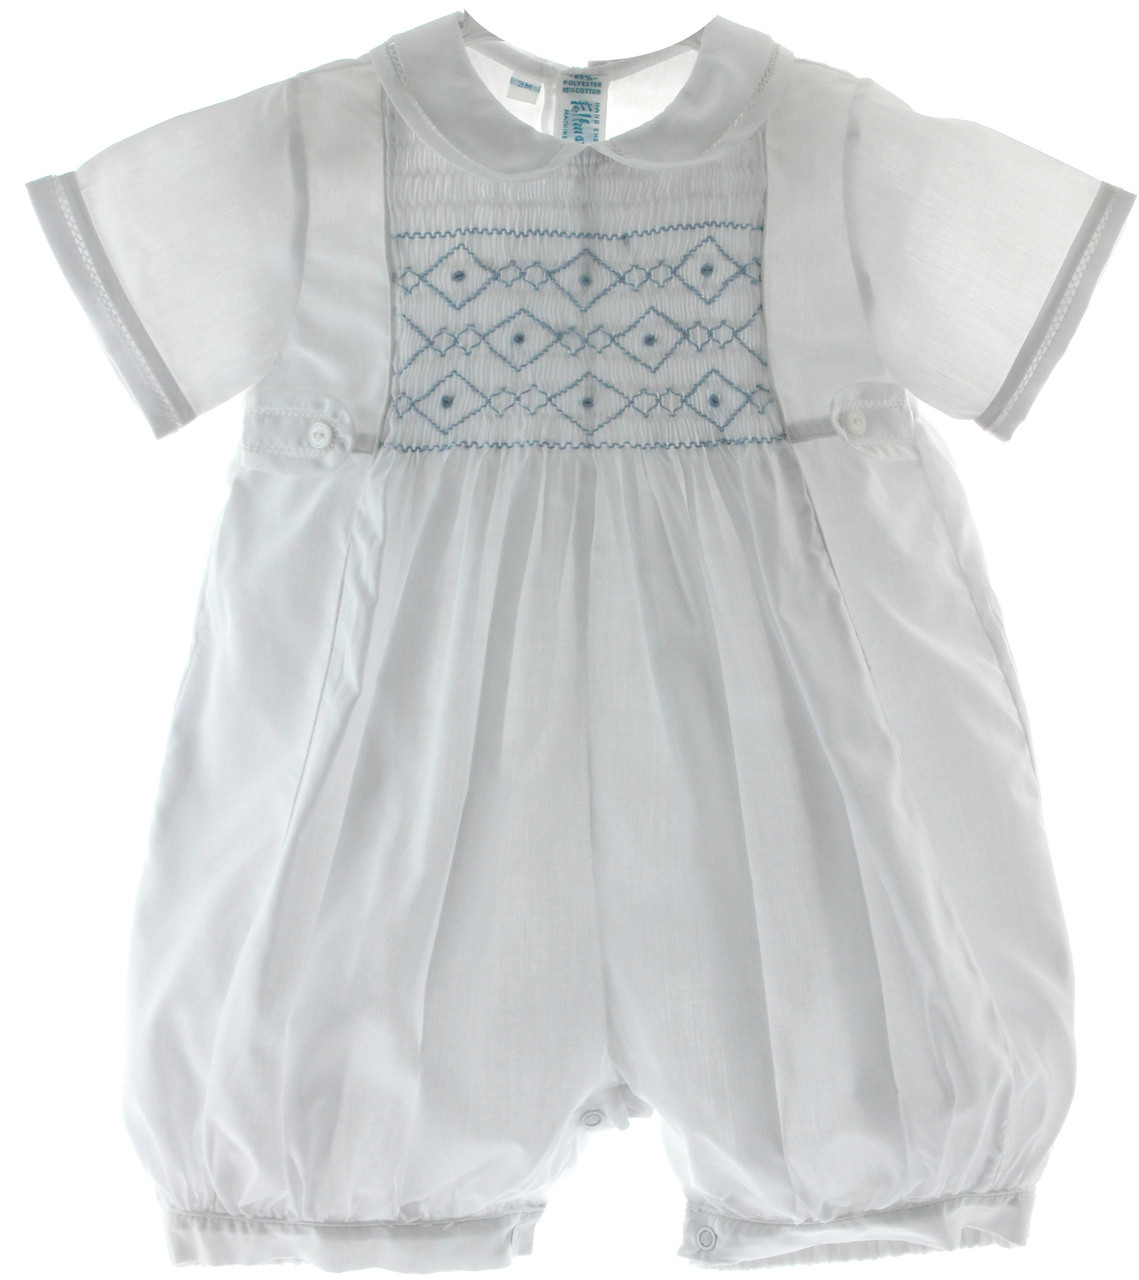 6c04cea613a1 Boys White   Blue Christening Outfit